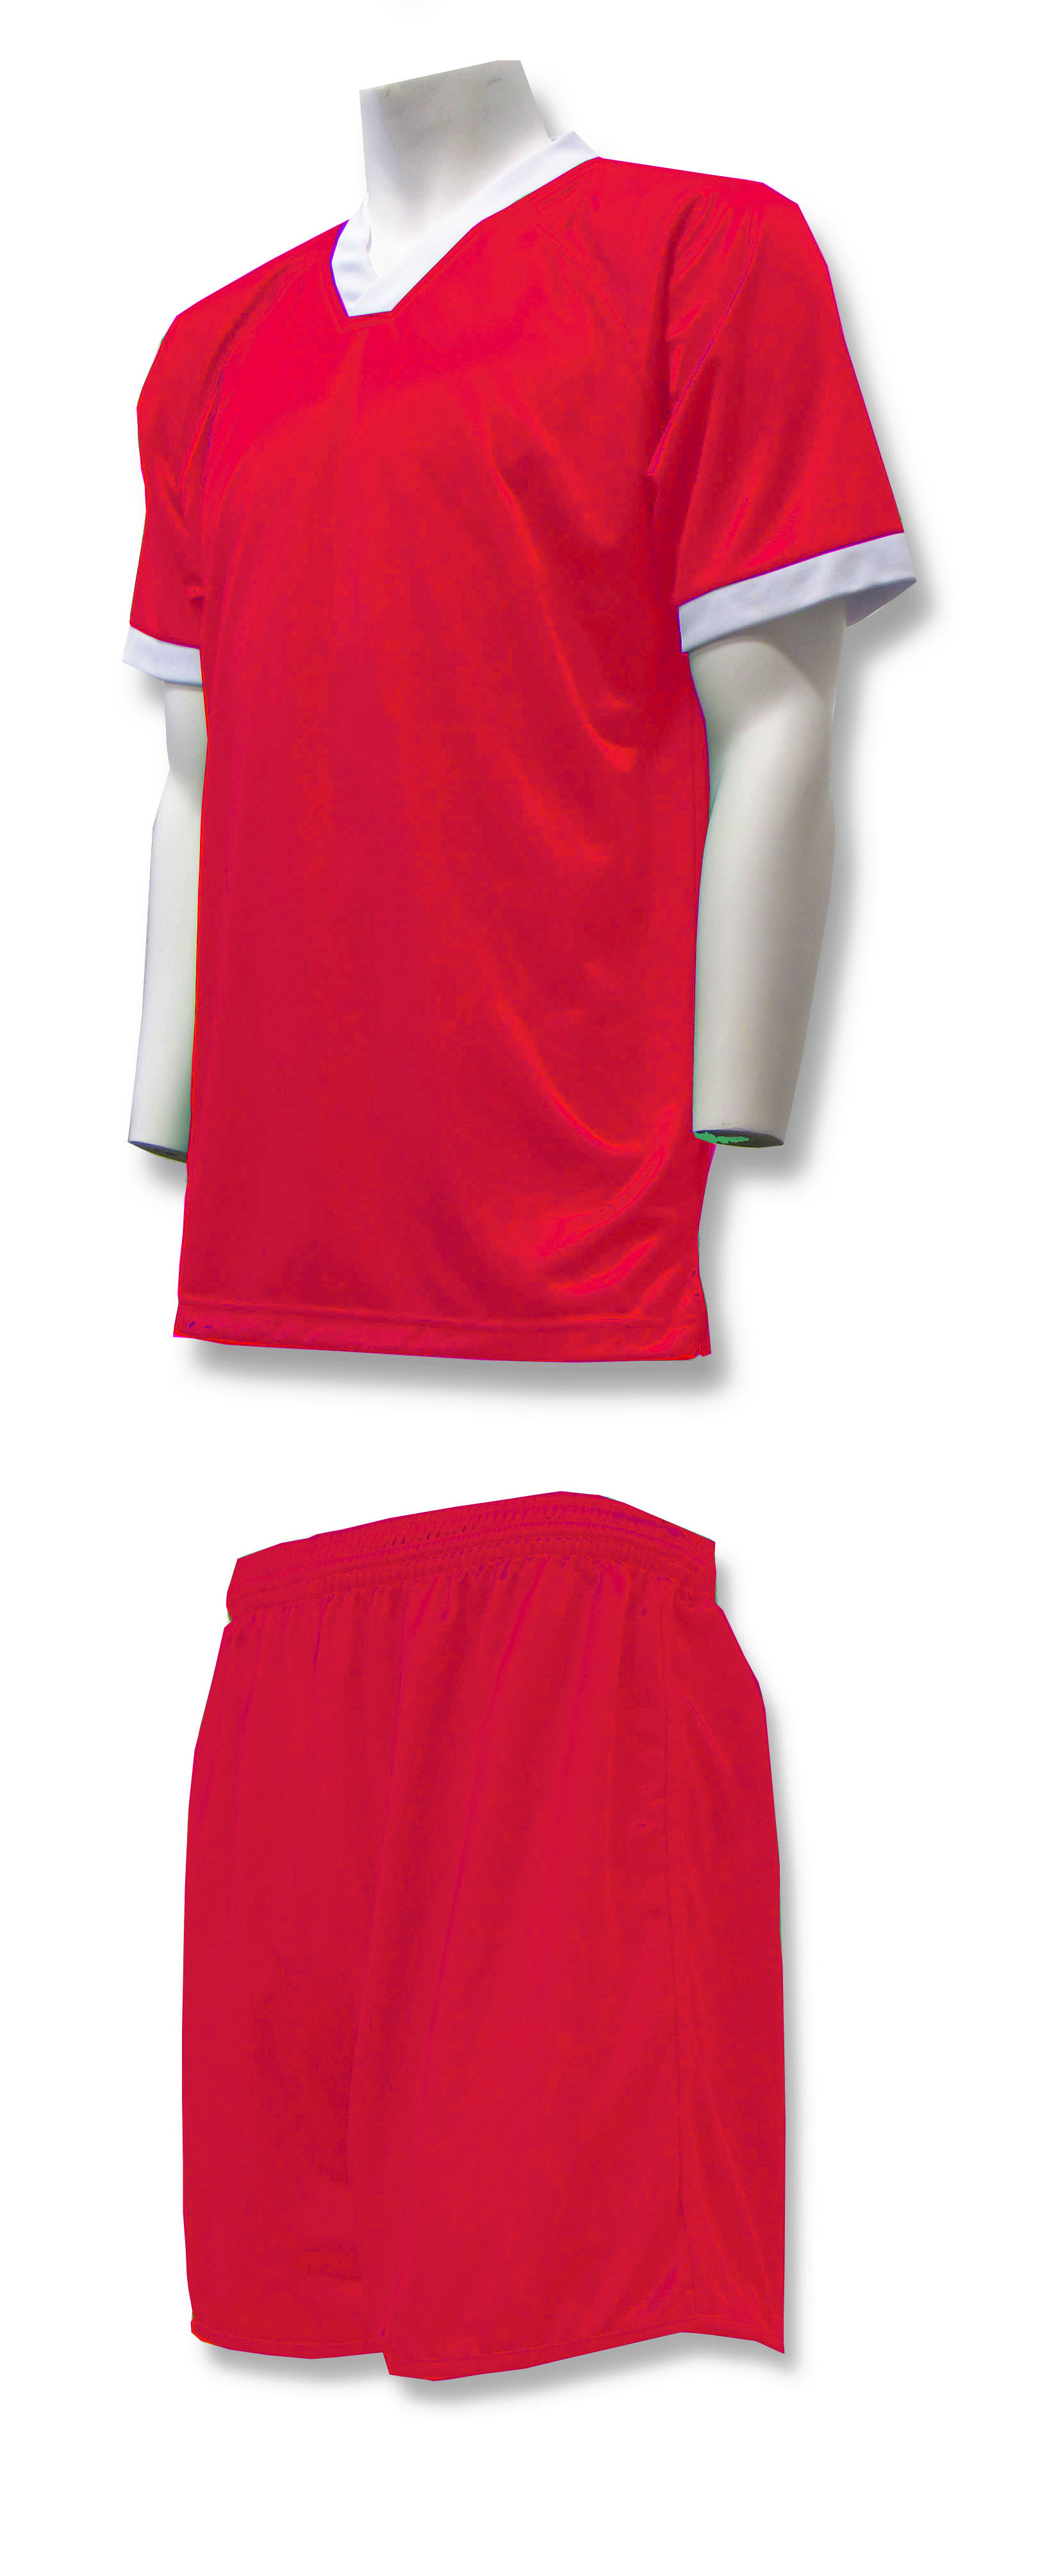 Forza soccer uniform kit in red by Code Four Athletics